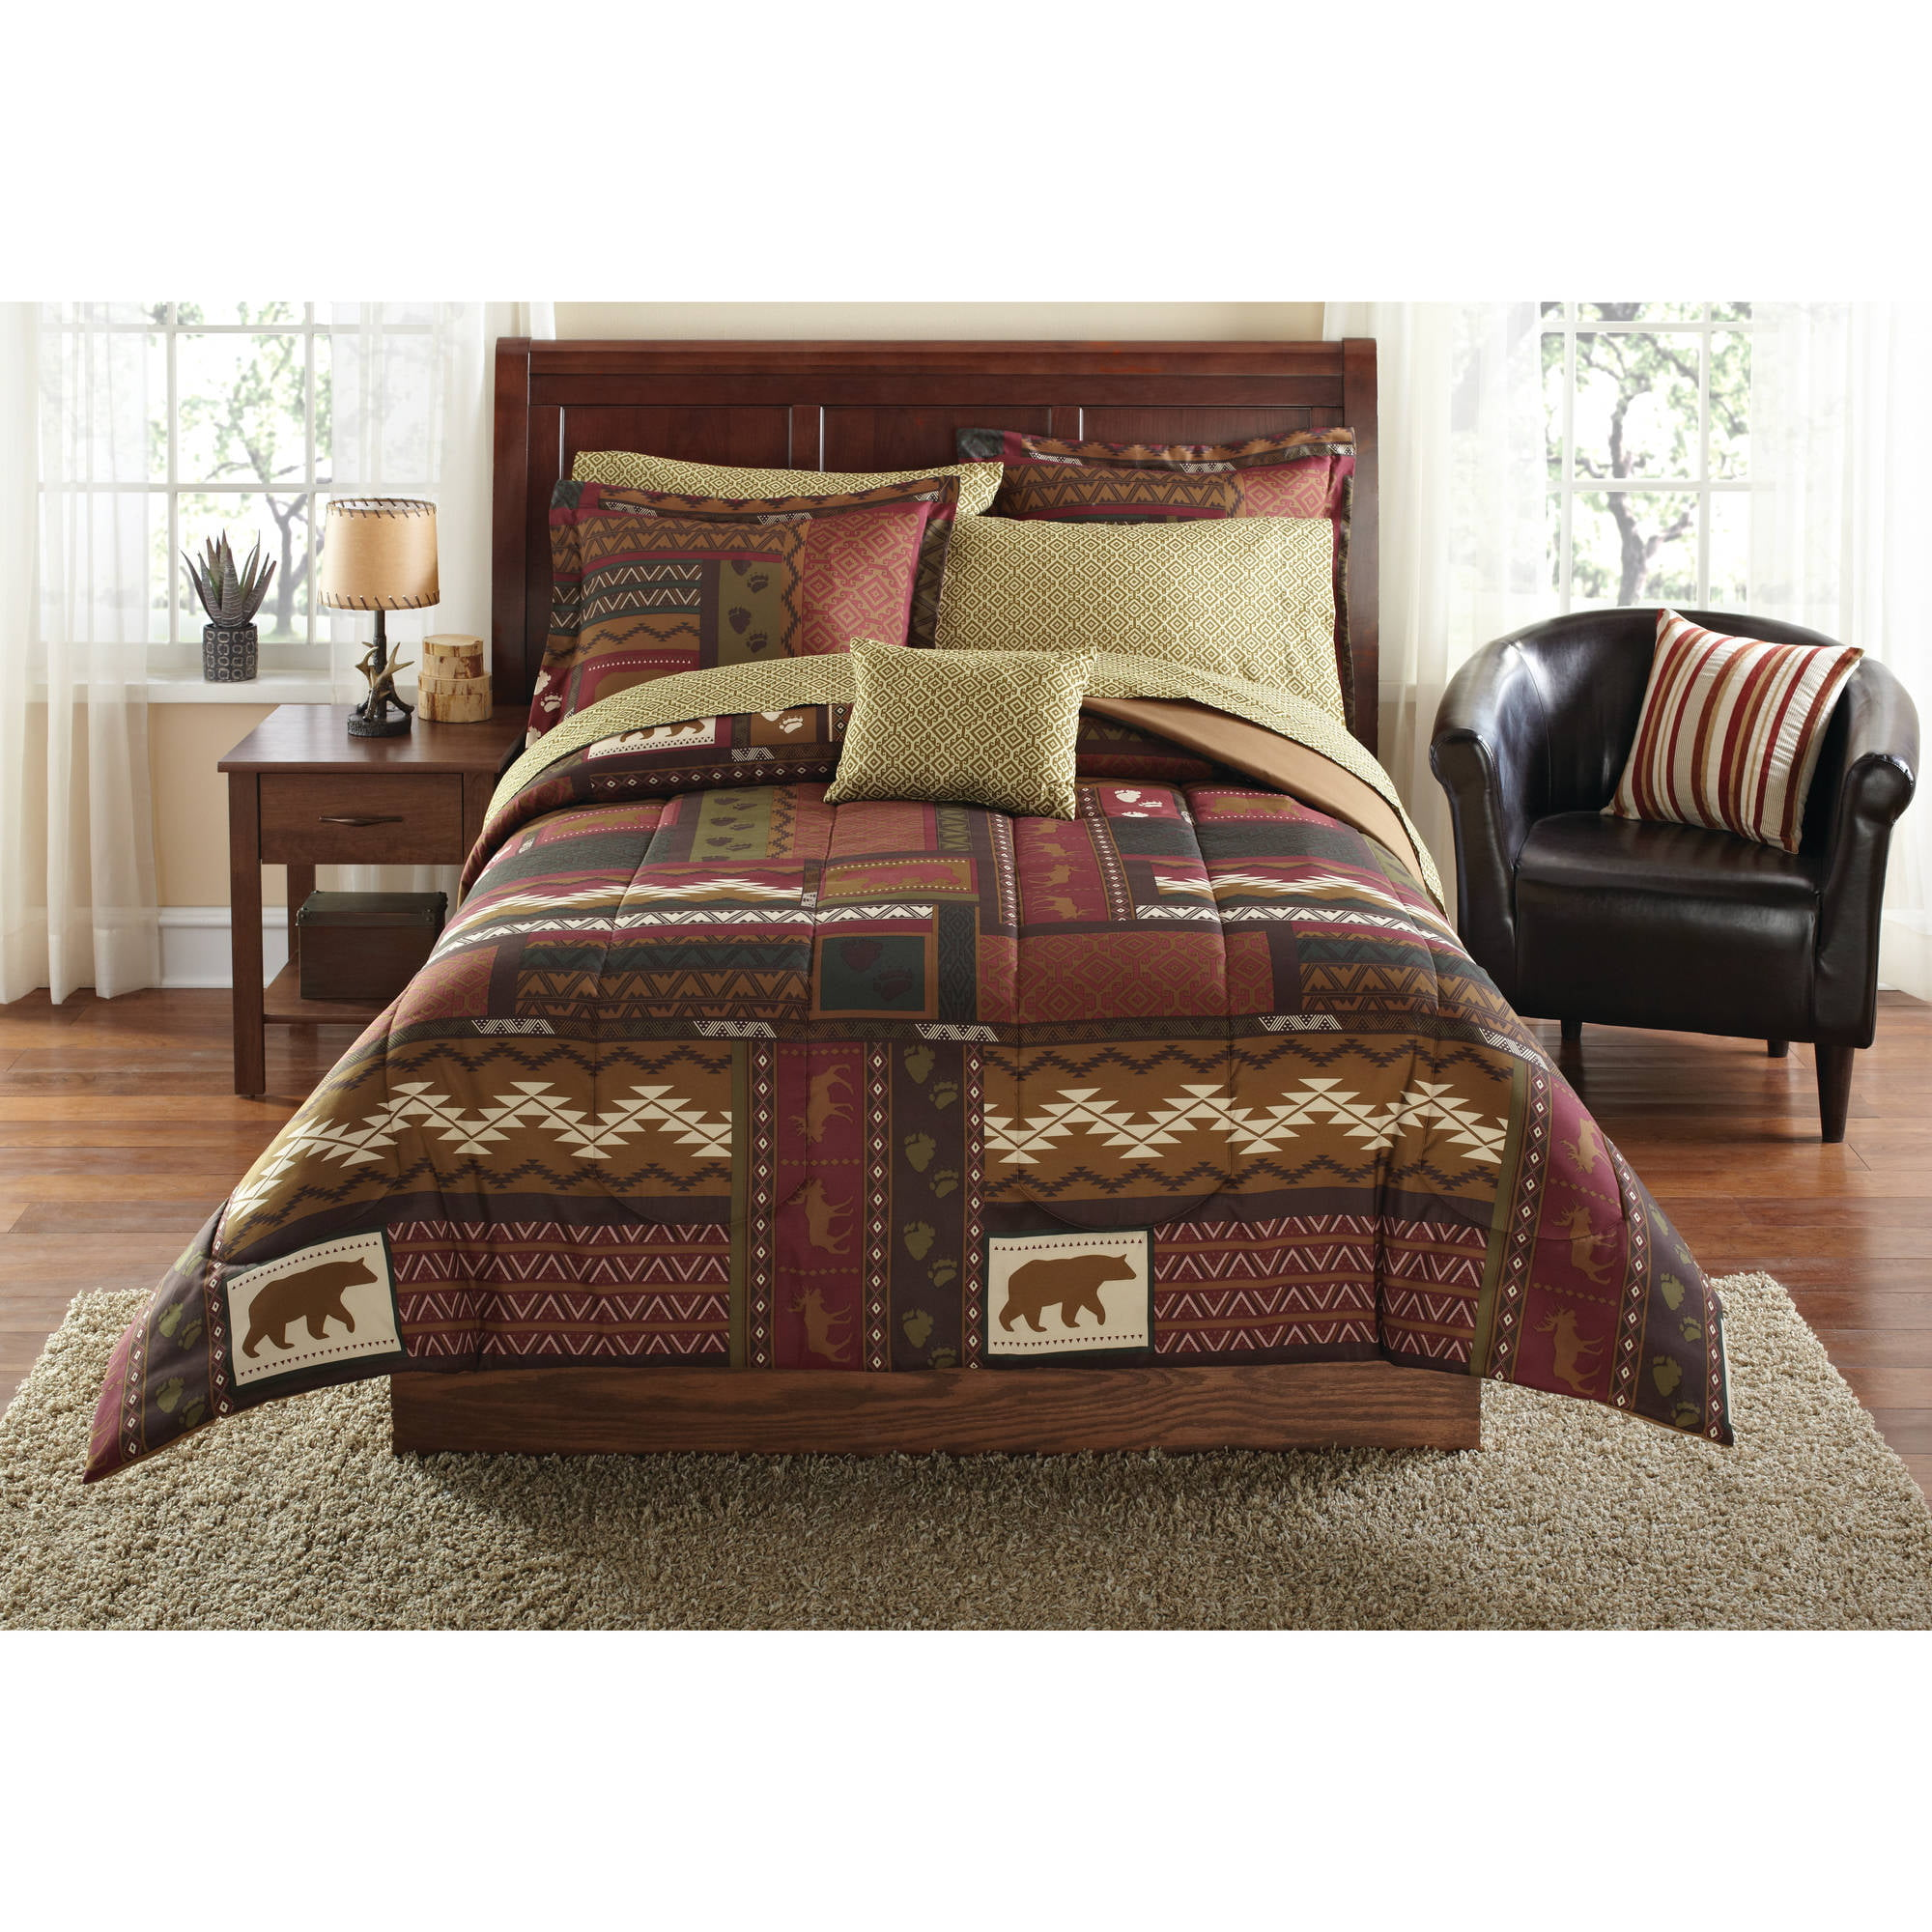 Brown bedding sets queen - Mainstays Cabin Bed In A Bag Coordinated Bedding Set